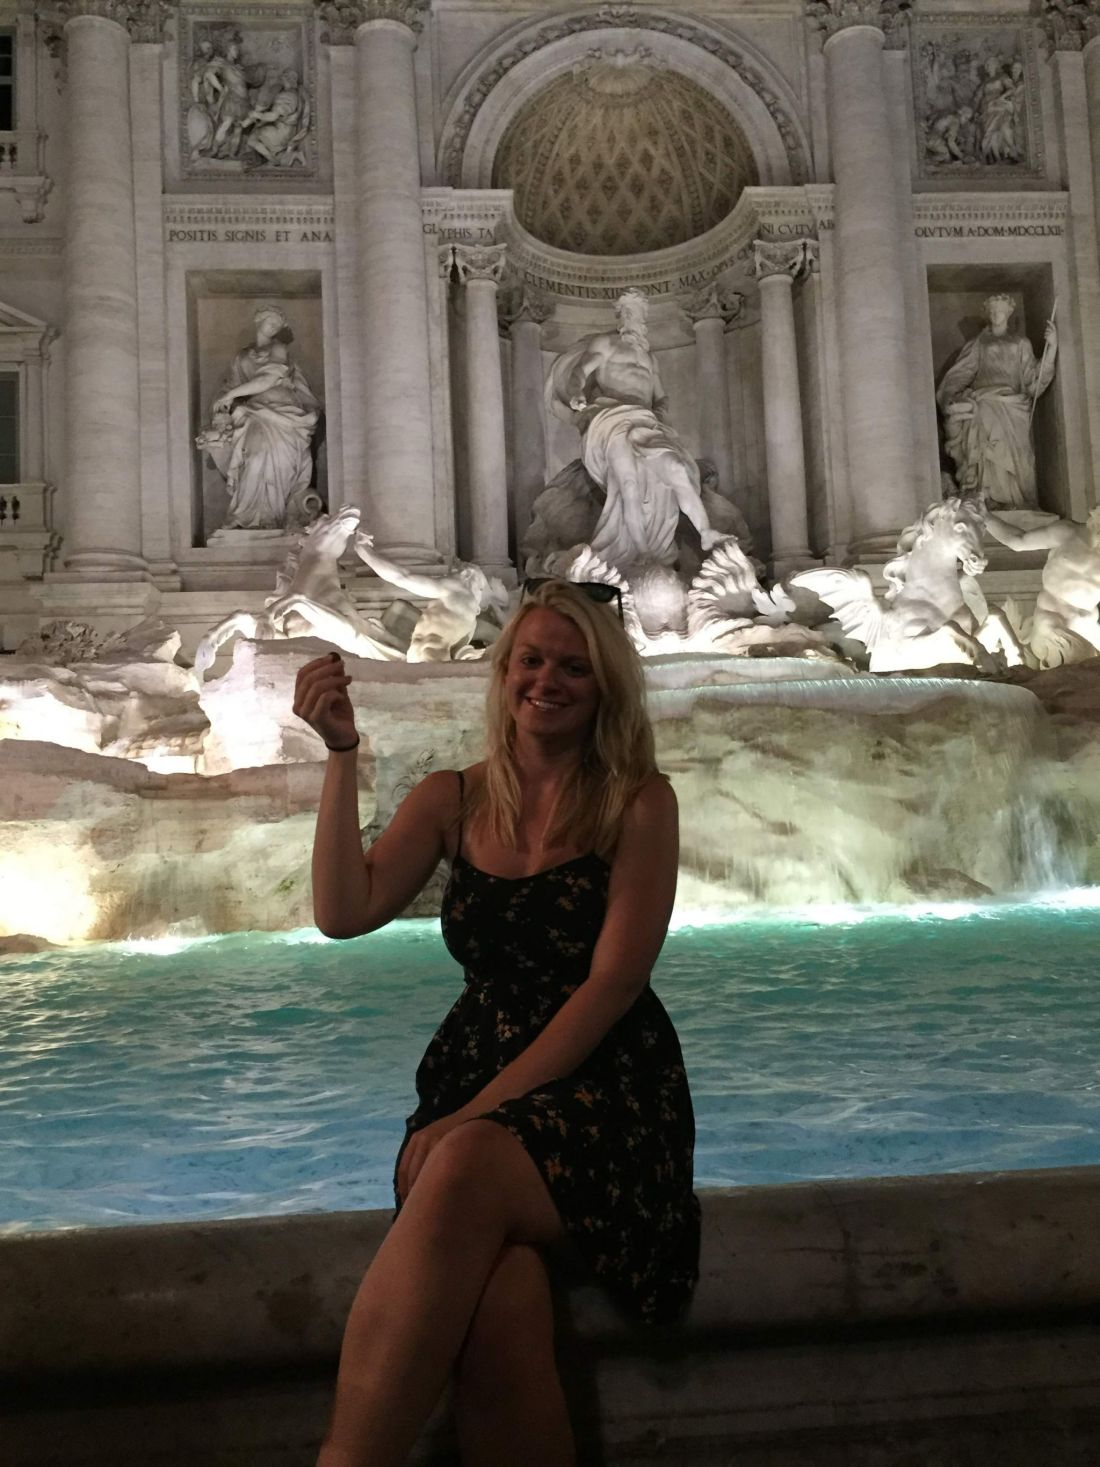 Laura at the Trevi Fountain